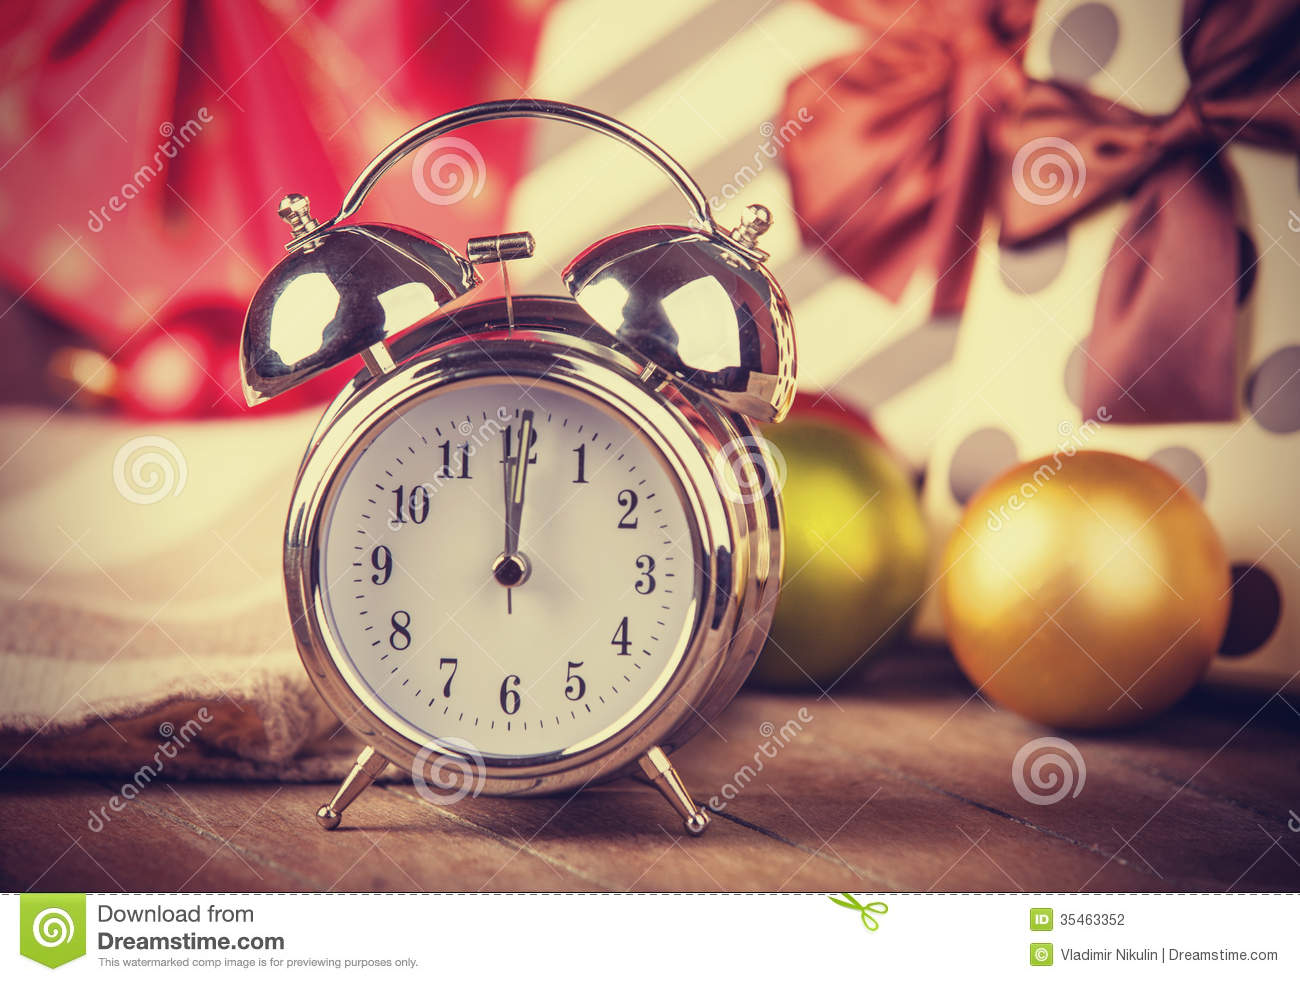 Vintage clock on christmas background stock photography for Vintage style photography tumblr